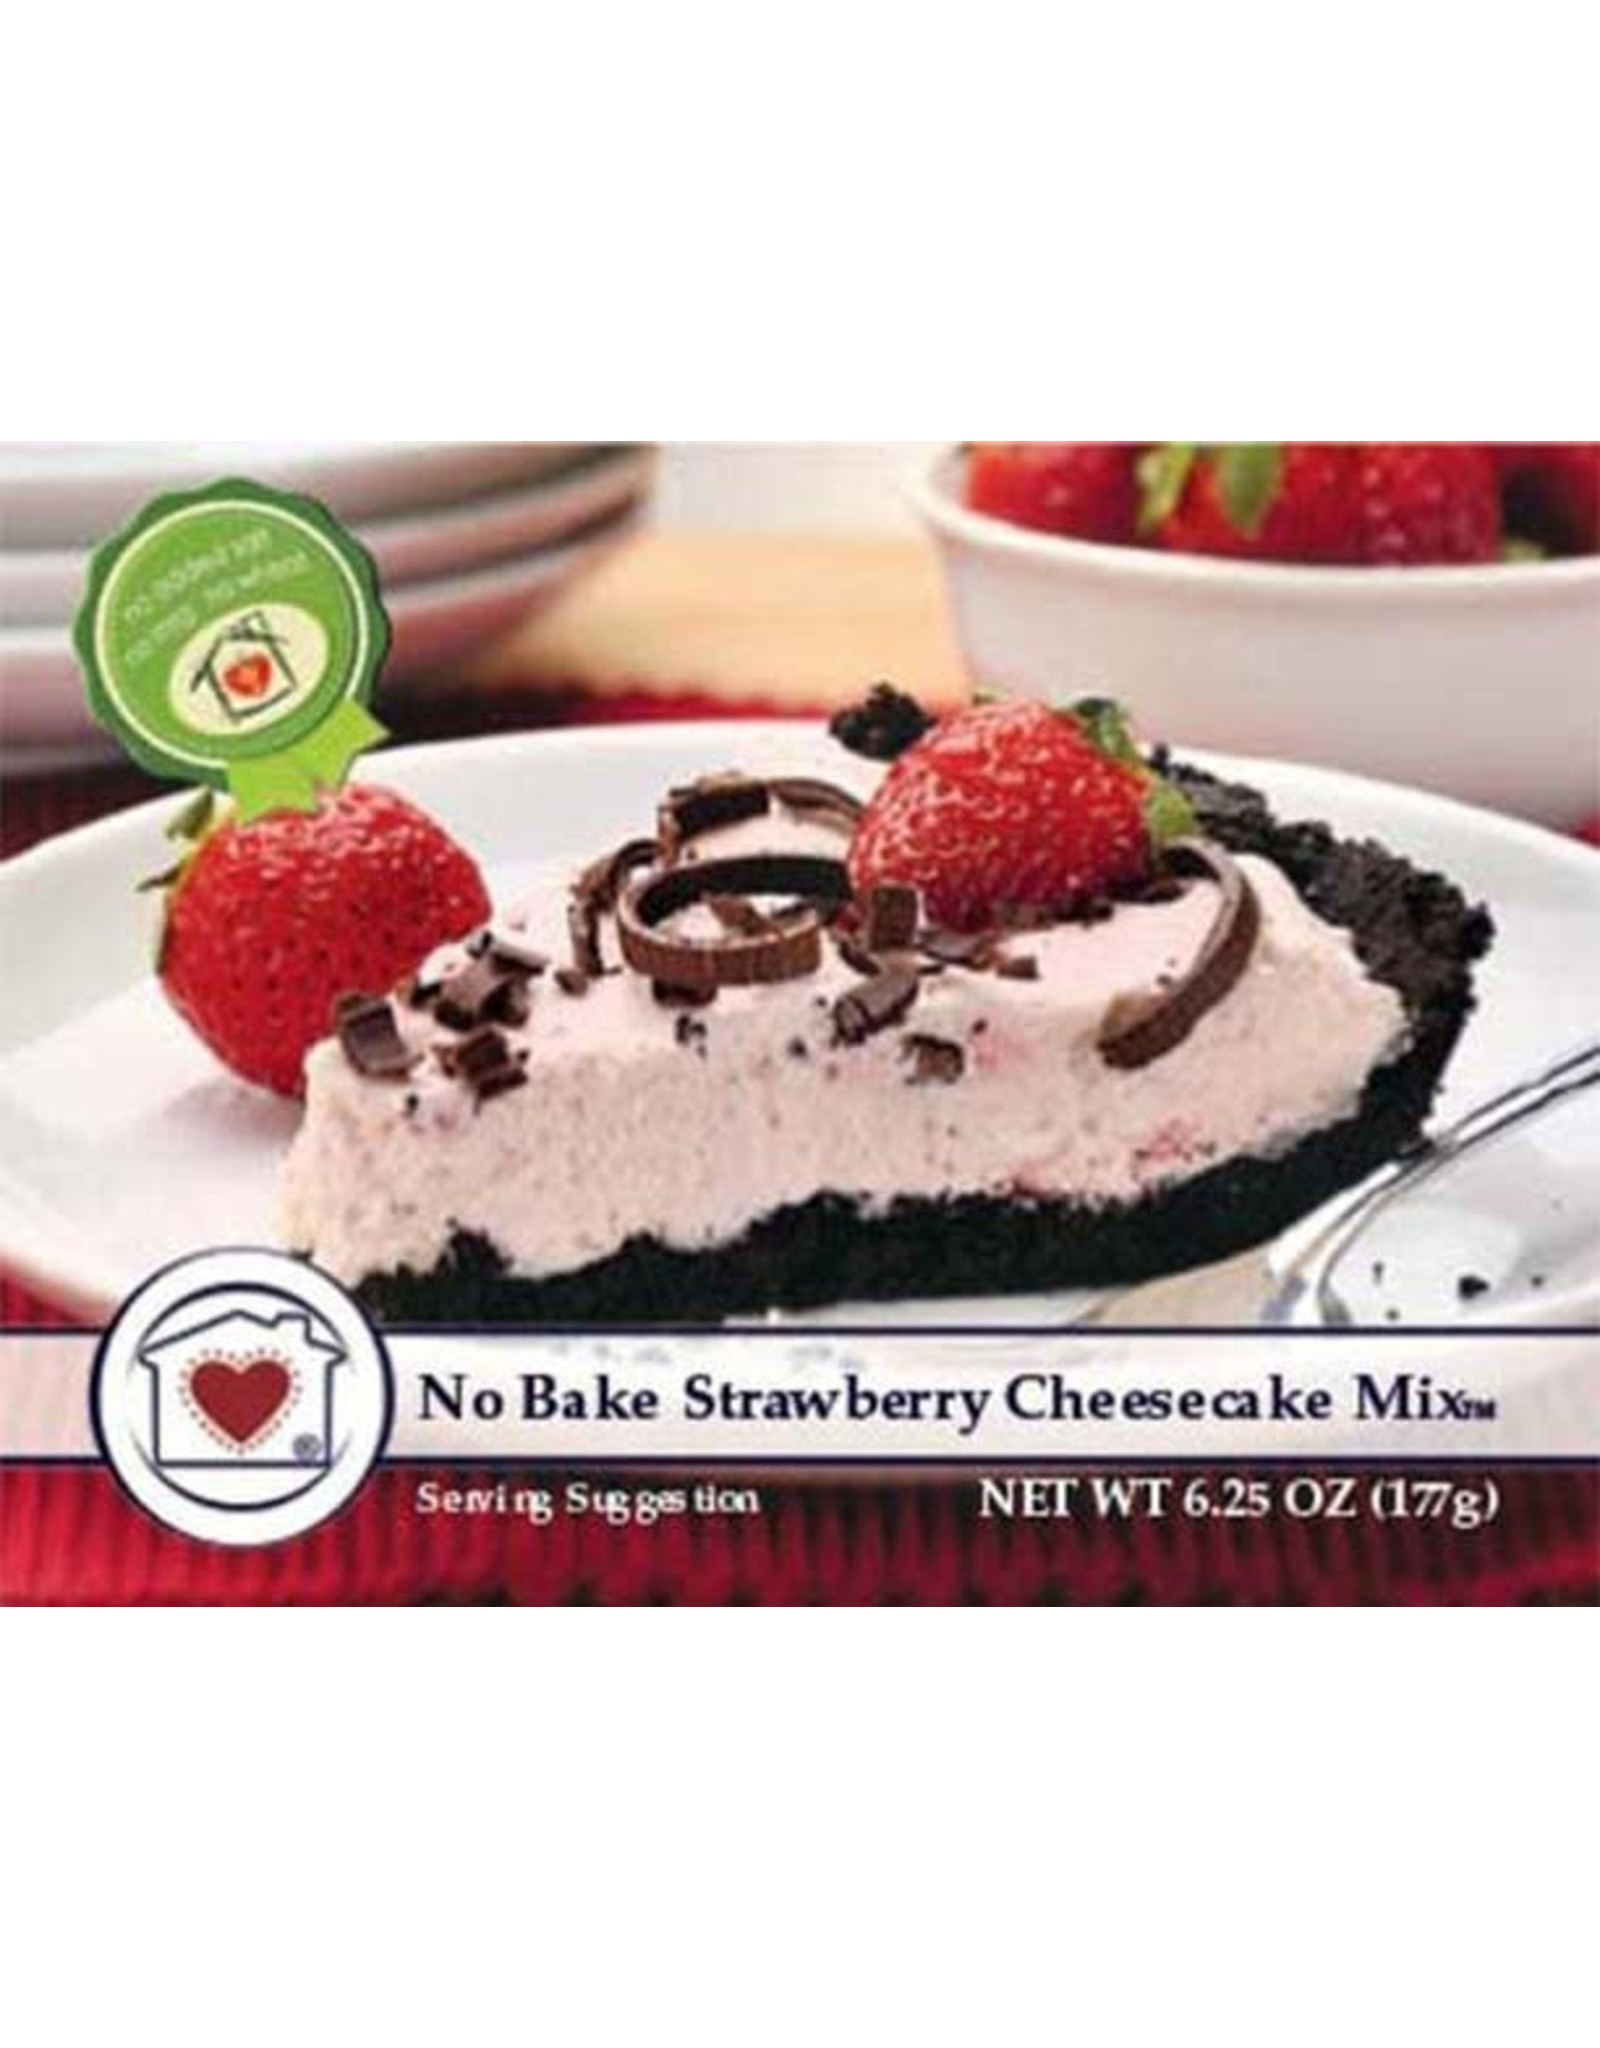 Country Home Creations STRAWBERRY NO BAKE CHEEECAKE